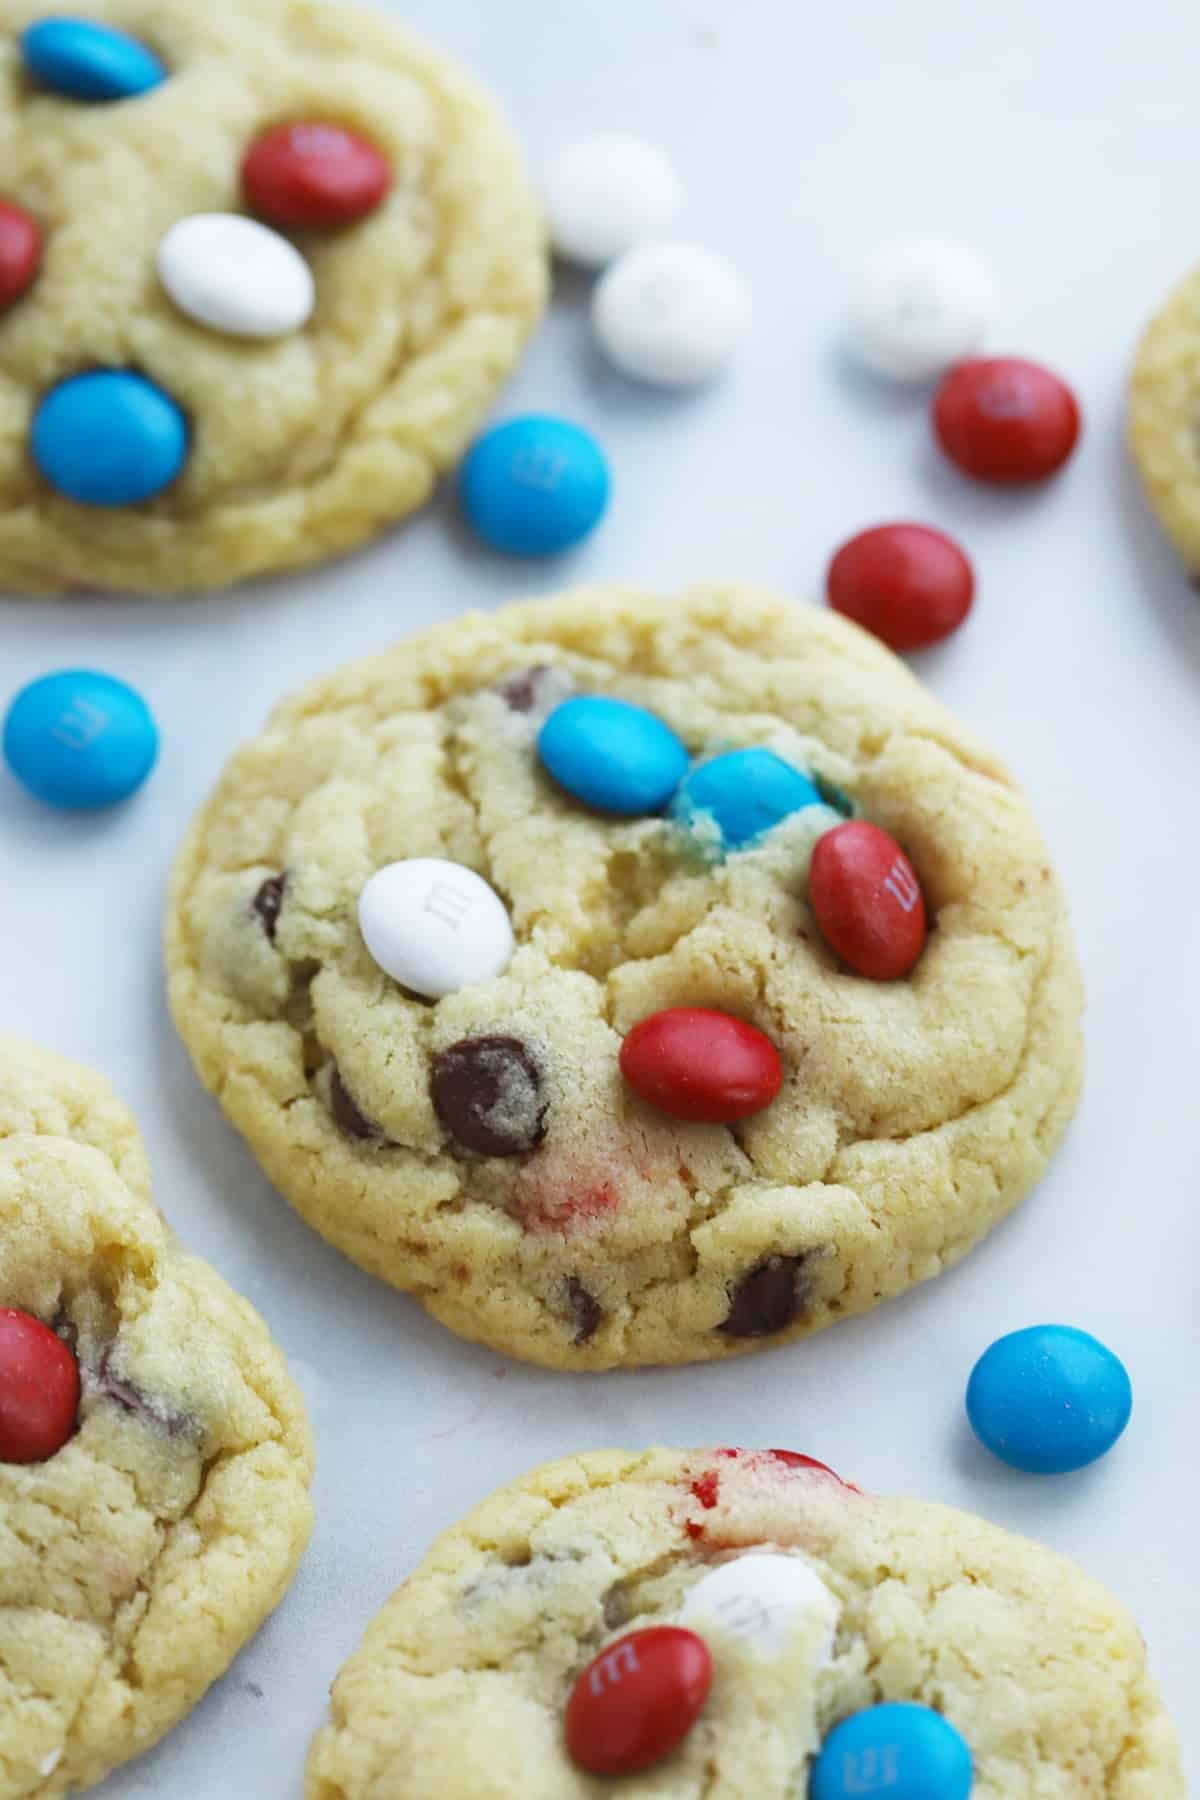 Chocolate Chip Cookies with red, white and blue M&Ms on a table.